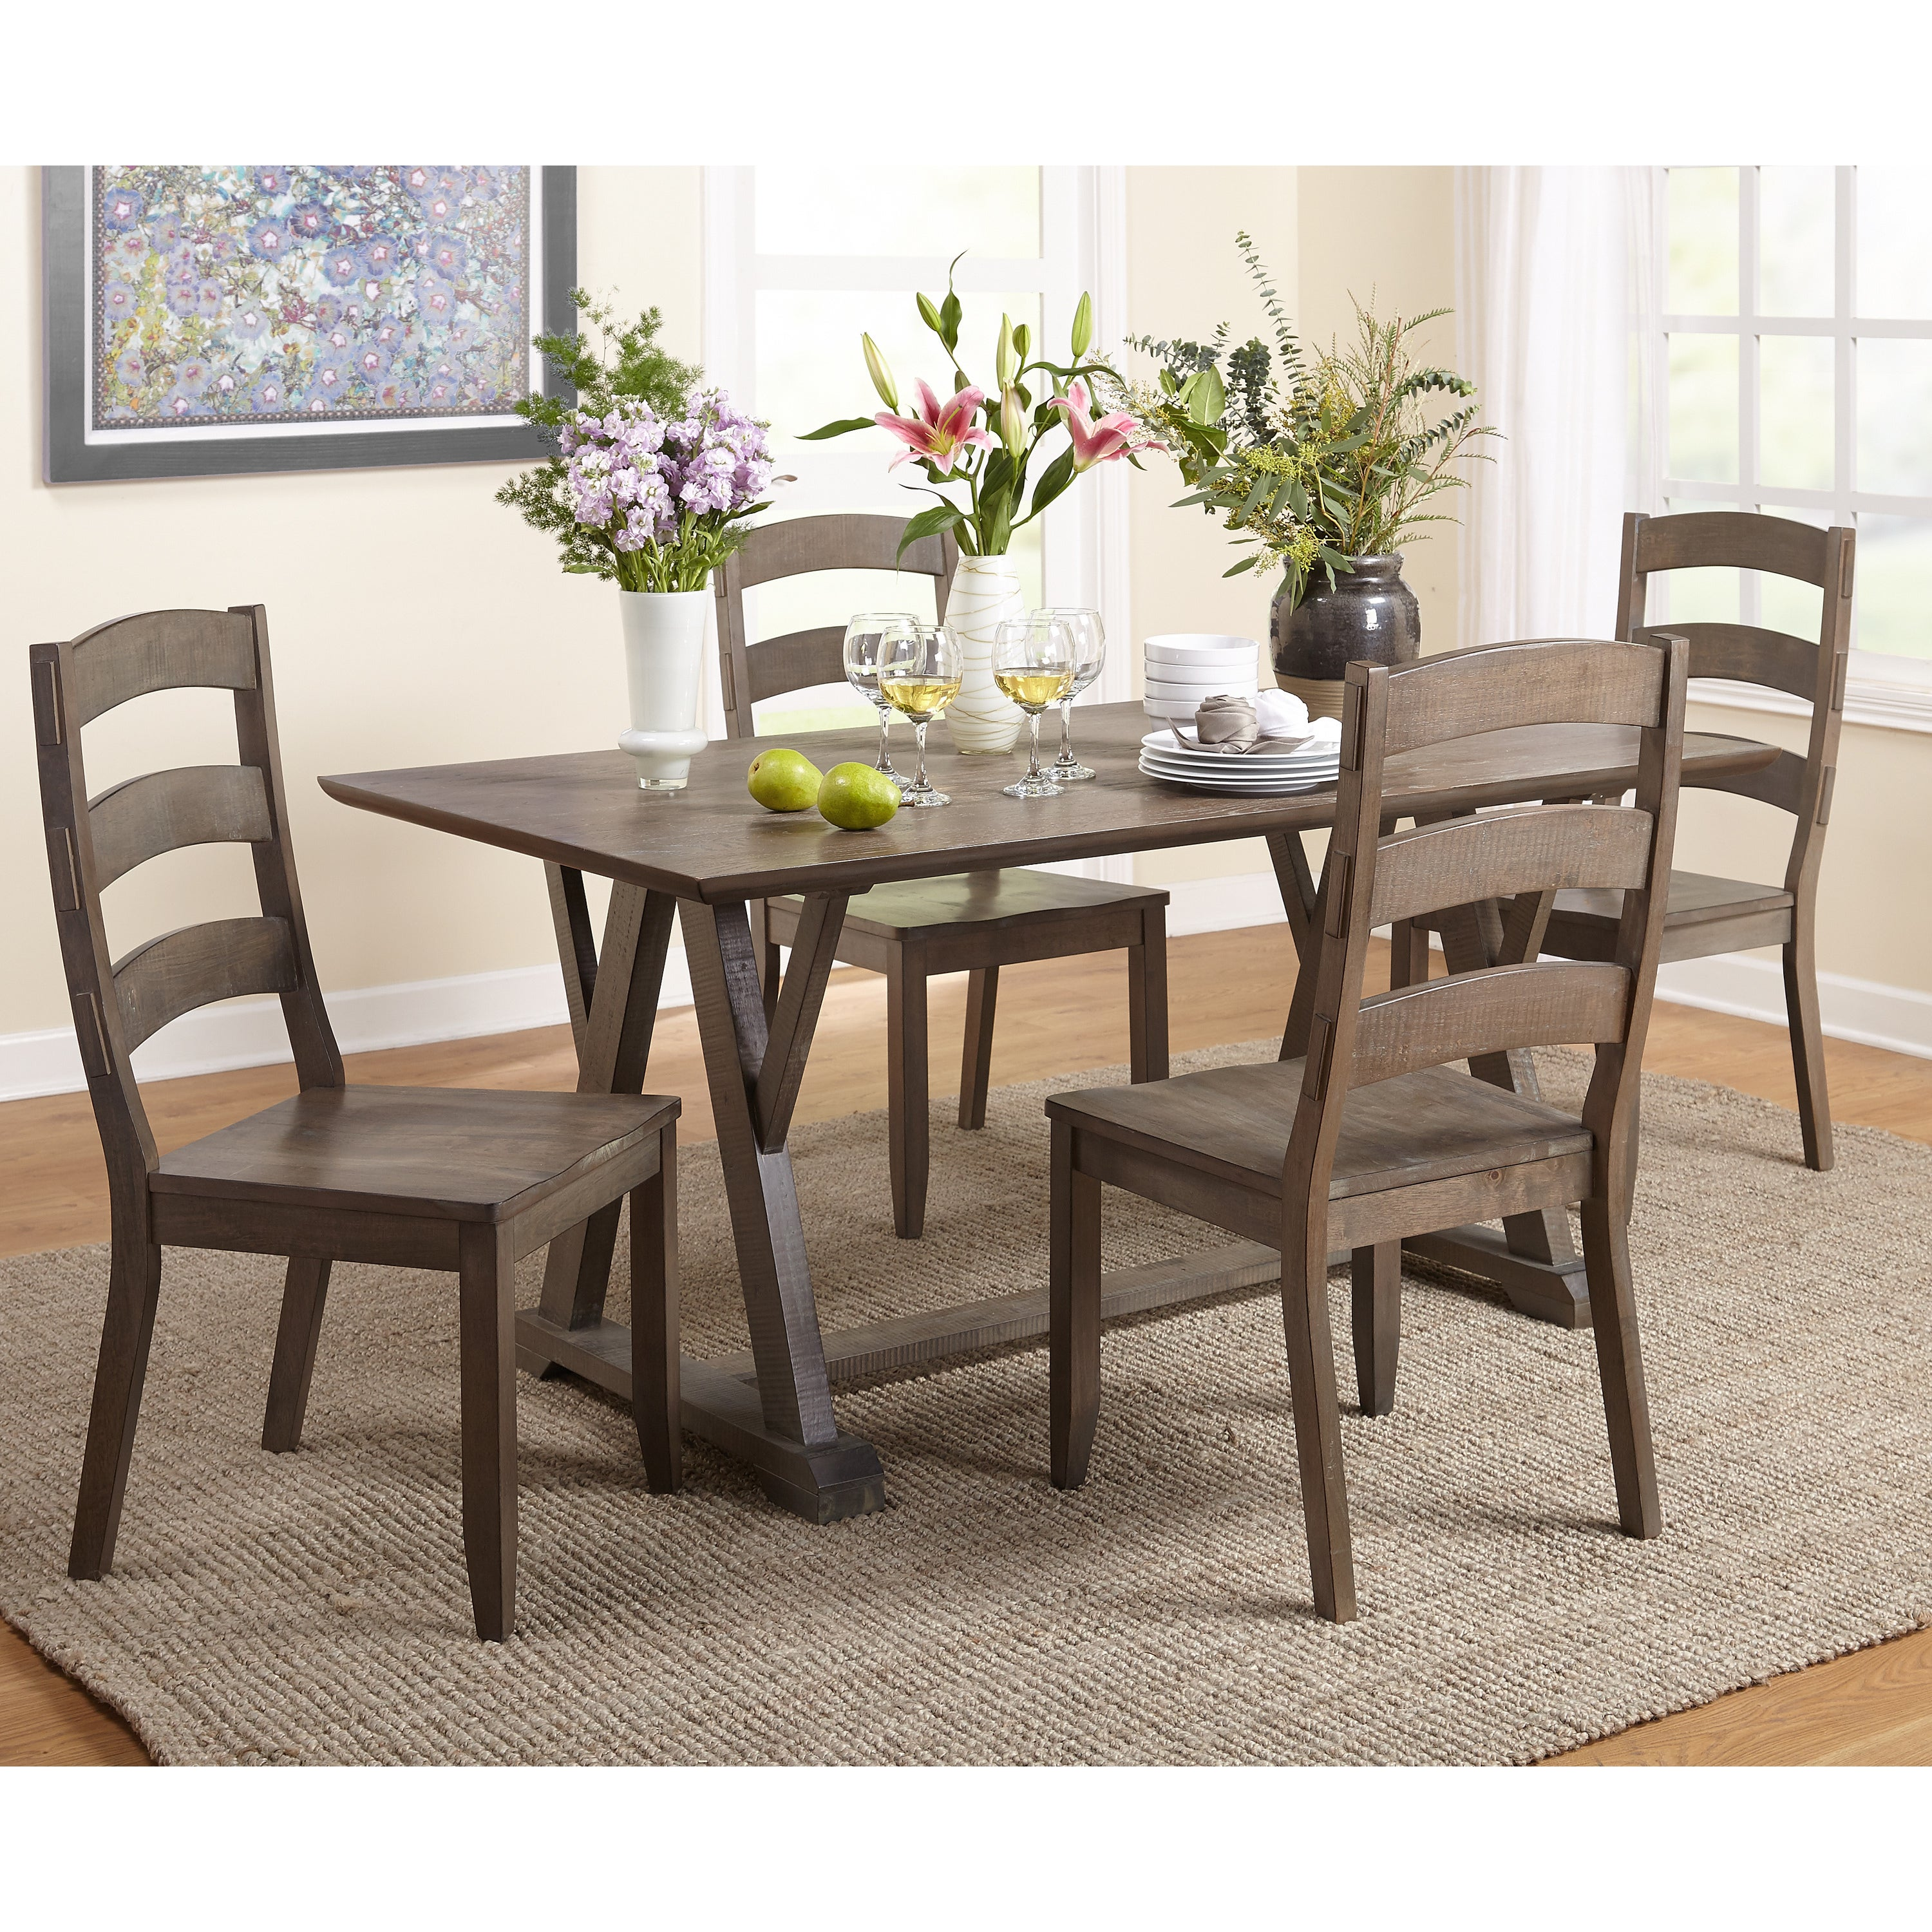 French Country Kitchen Dining Room Sets For Less Overstockcom